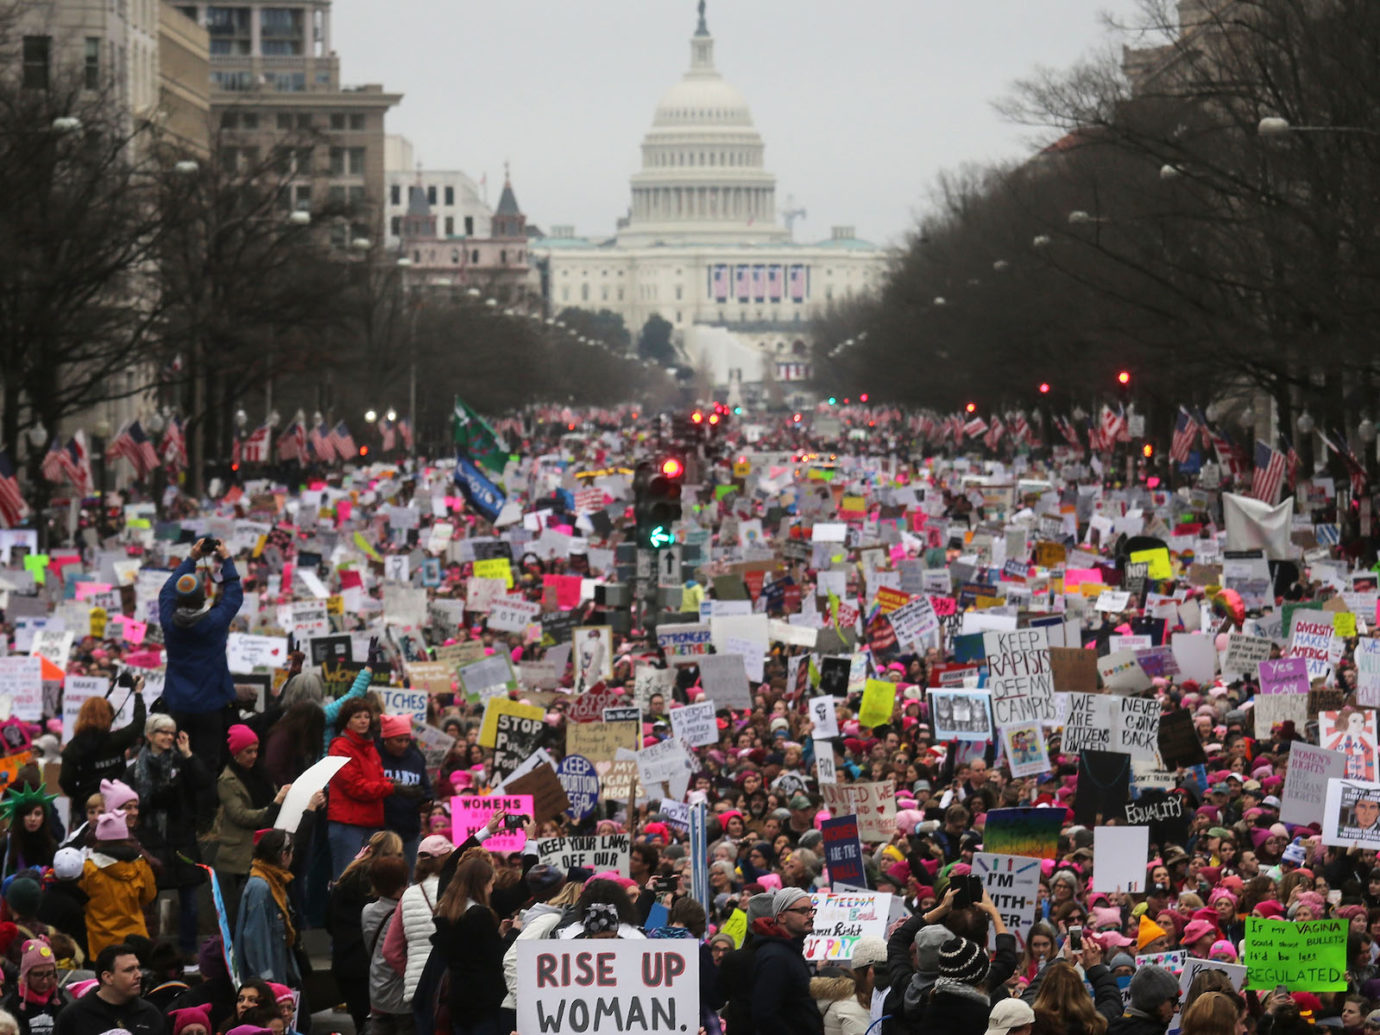 Protesters walk during the Women's March on Washington, Jan. 21, 2017. (Photo/JTA-Mario Tama-Getty Images)